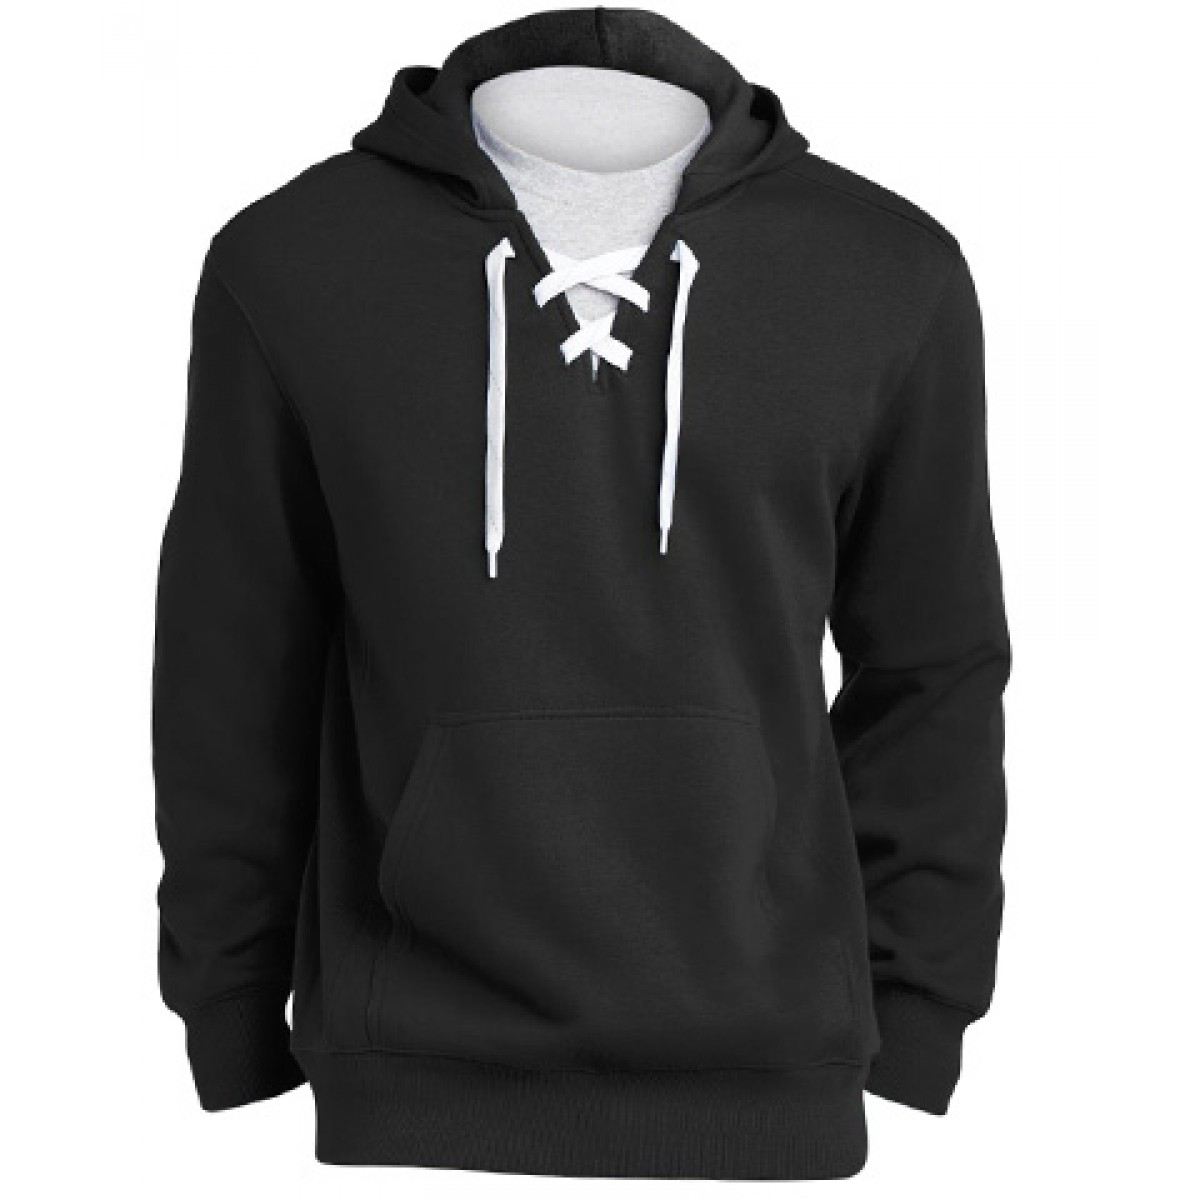 Lace Up Pullover Hooded Sweatshirt-Black-2XL